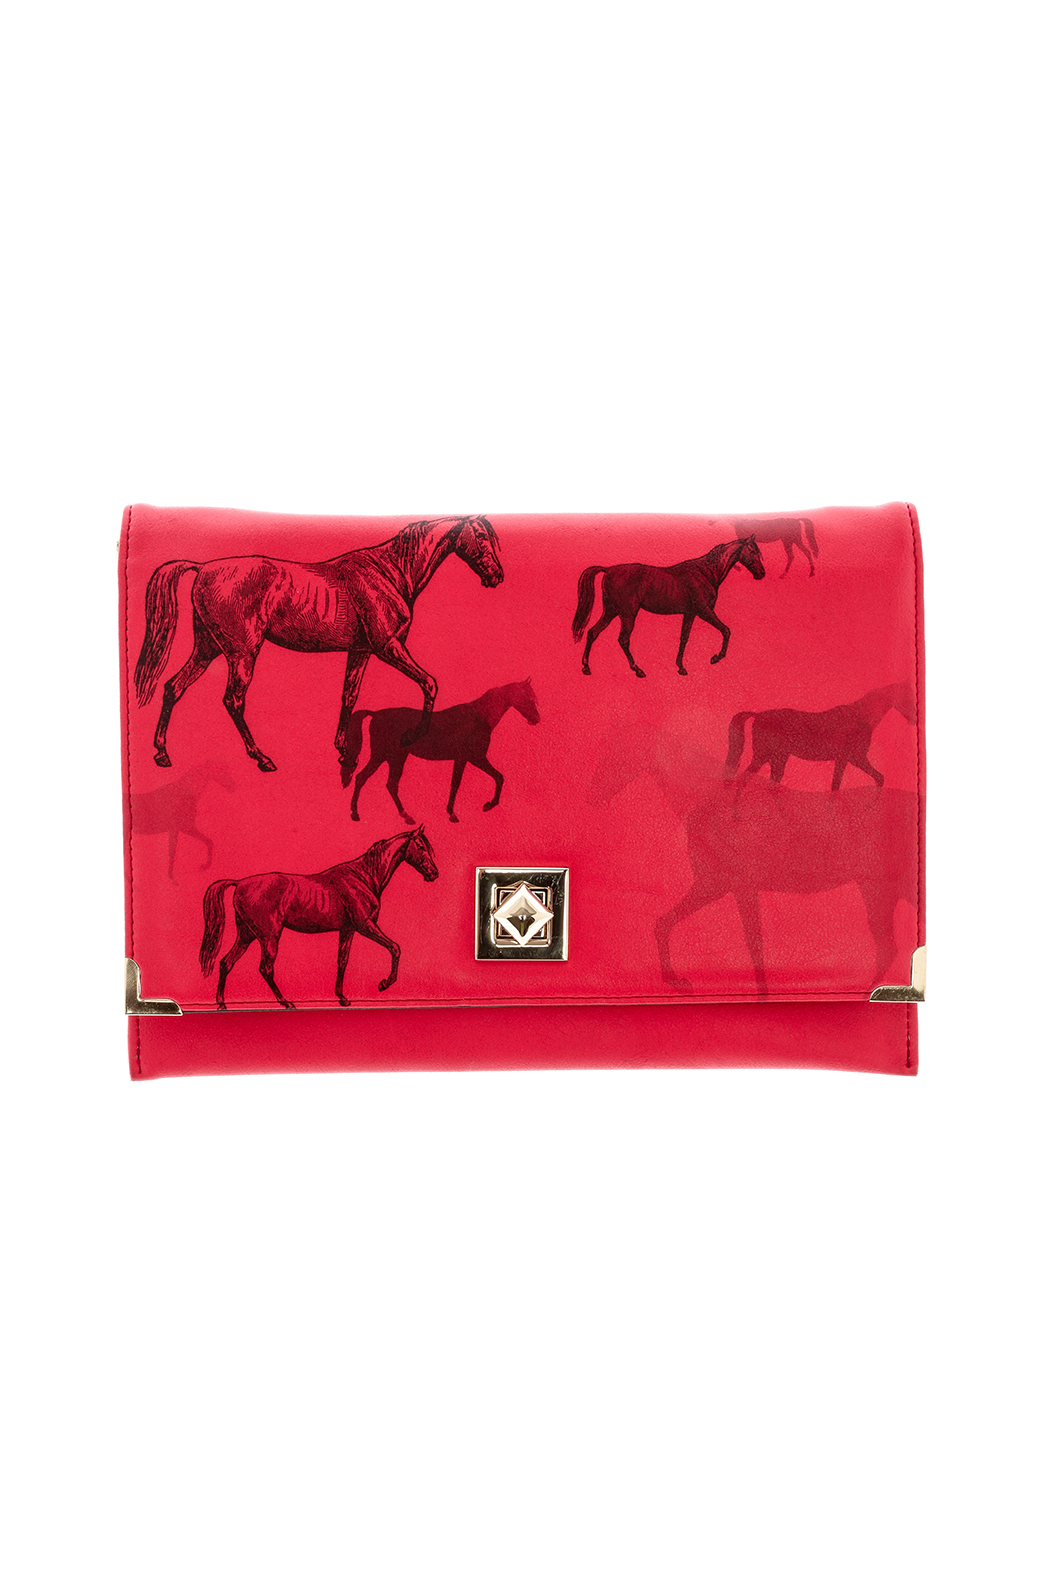 House of Disaster Horse Clutch Purse - Main Image